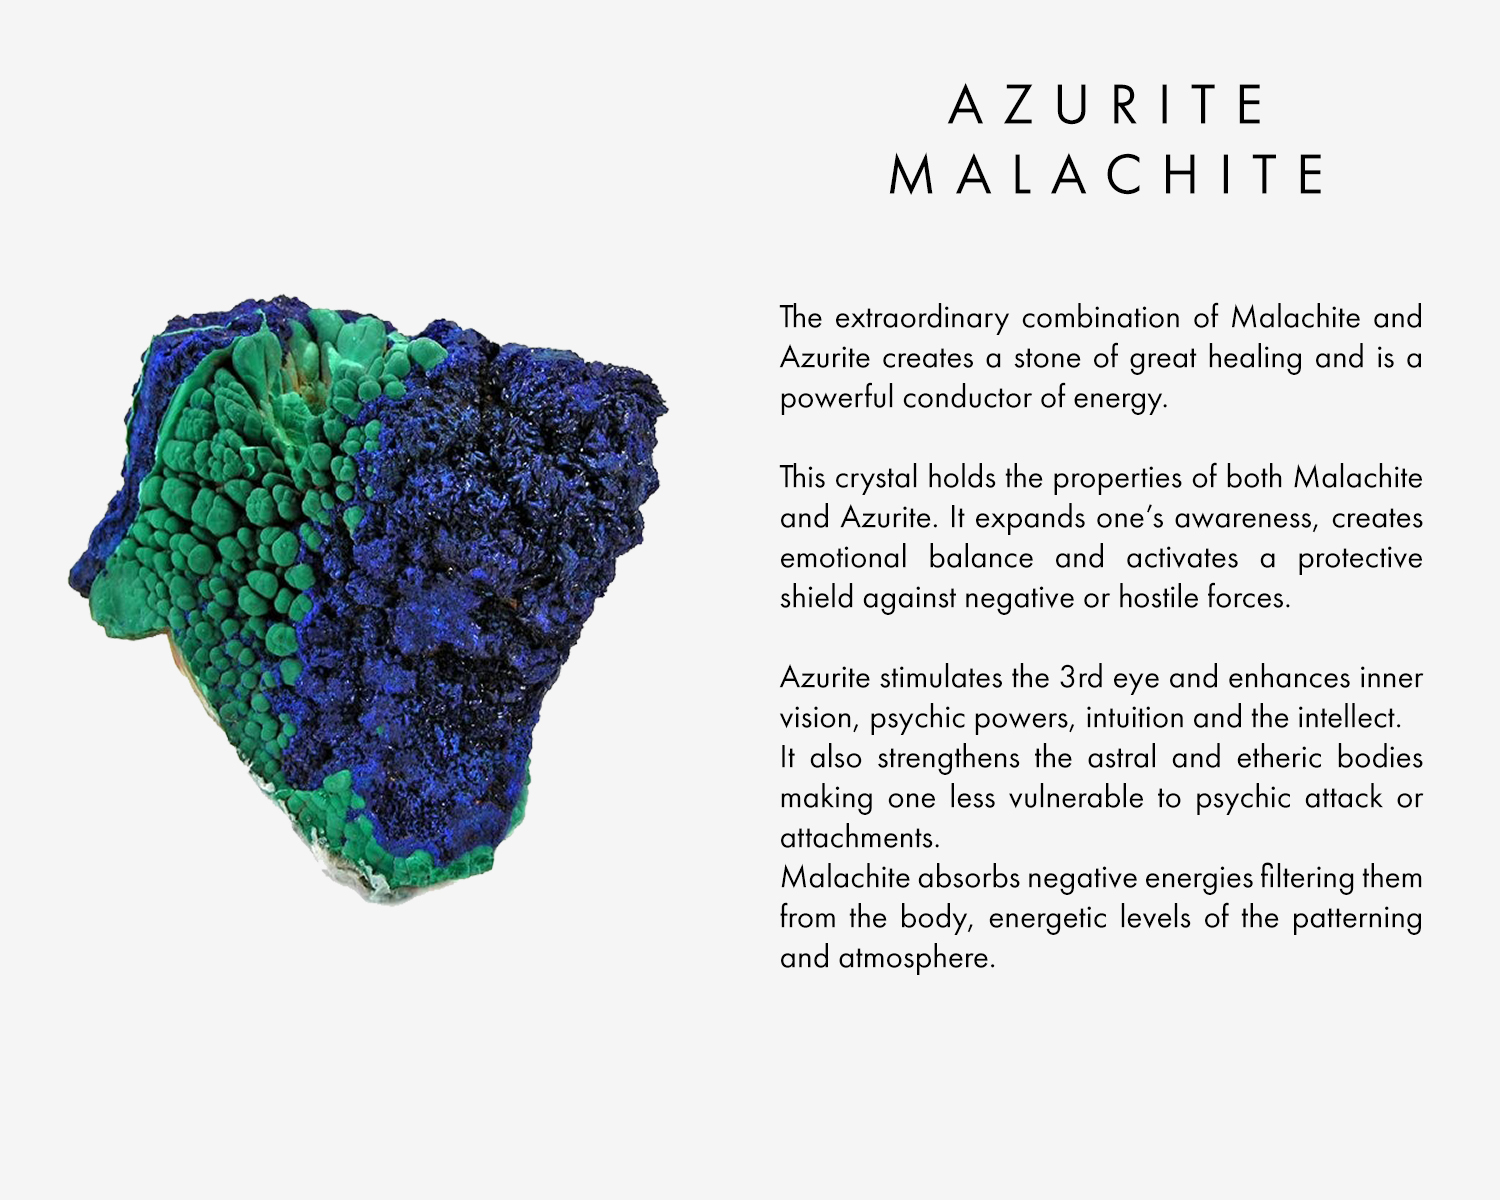 The extraordinary combination of Malachite and Azurite creates a stone of great healing and is a powerful conductor of energy. This crystal holds the properties of both Malachite and Azurite. It expands one's awareness, creates emotional balance and activates a protective shield against negative or hostile forces. Azurite stimulates the 3rd eye and enhances inner vision, psychic powers, intuition and the intellect. It also strengthens the astral and etheric bodies making one less vulnerable to psychic attack or attachments. Malachite absorbs negative energies filtering them from the body,energetic levels of the patterning and atmosphere.